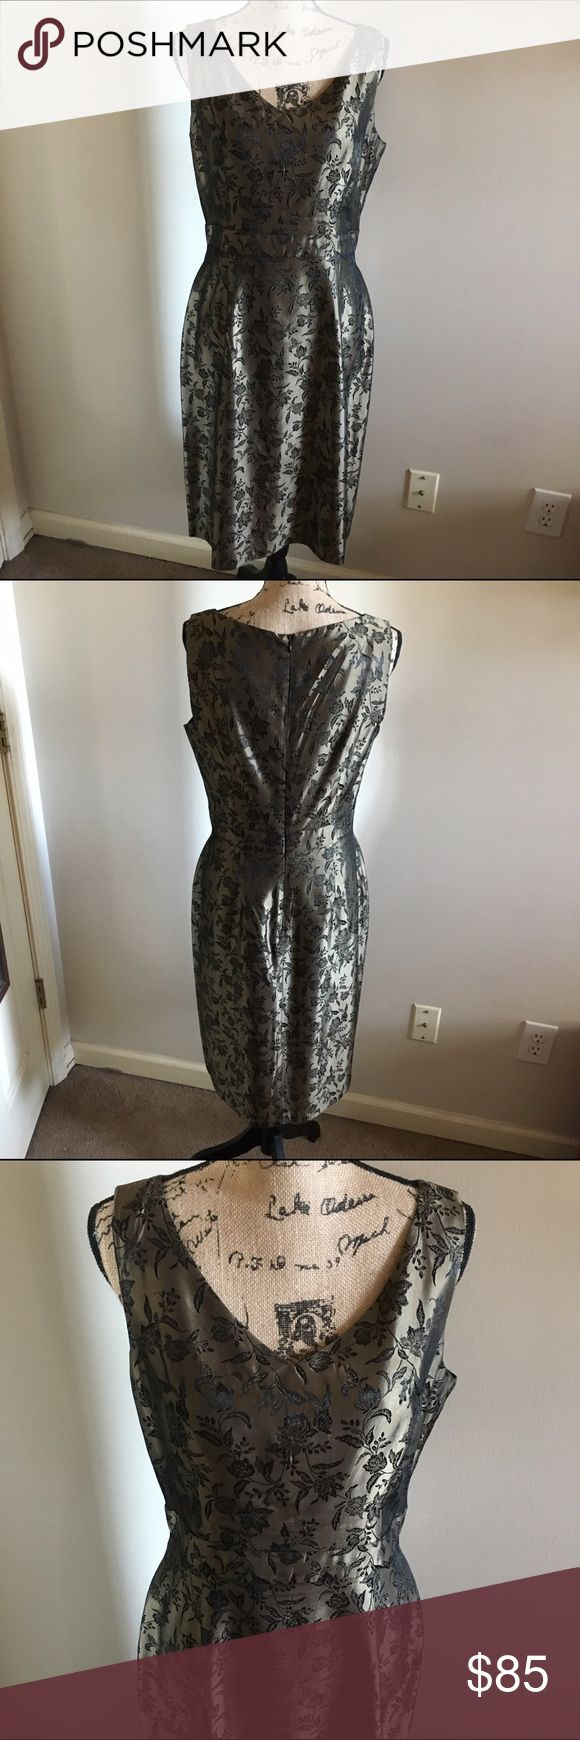 Beautiful Donna Ricco Dress Knee length V-Neck dress. Beautiful metallic gold color and design. Great for the holidays.  Excellent Condition. Donna Ricco Dresses